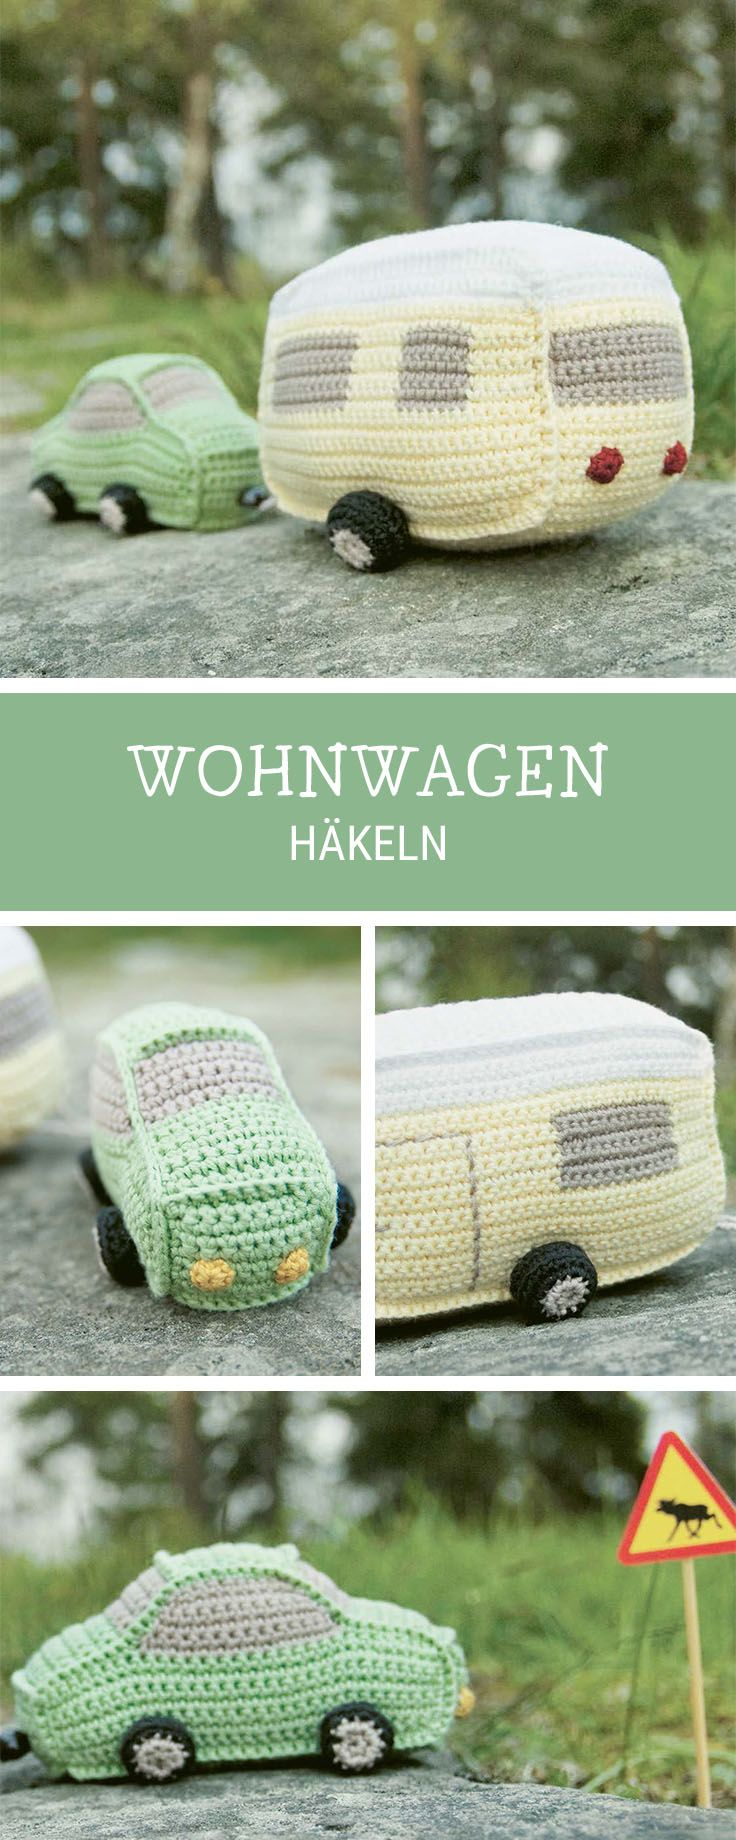 172 best Häkeln & Stricken images on Pinterest | Häkeln, Stricken ...